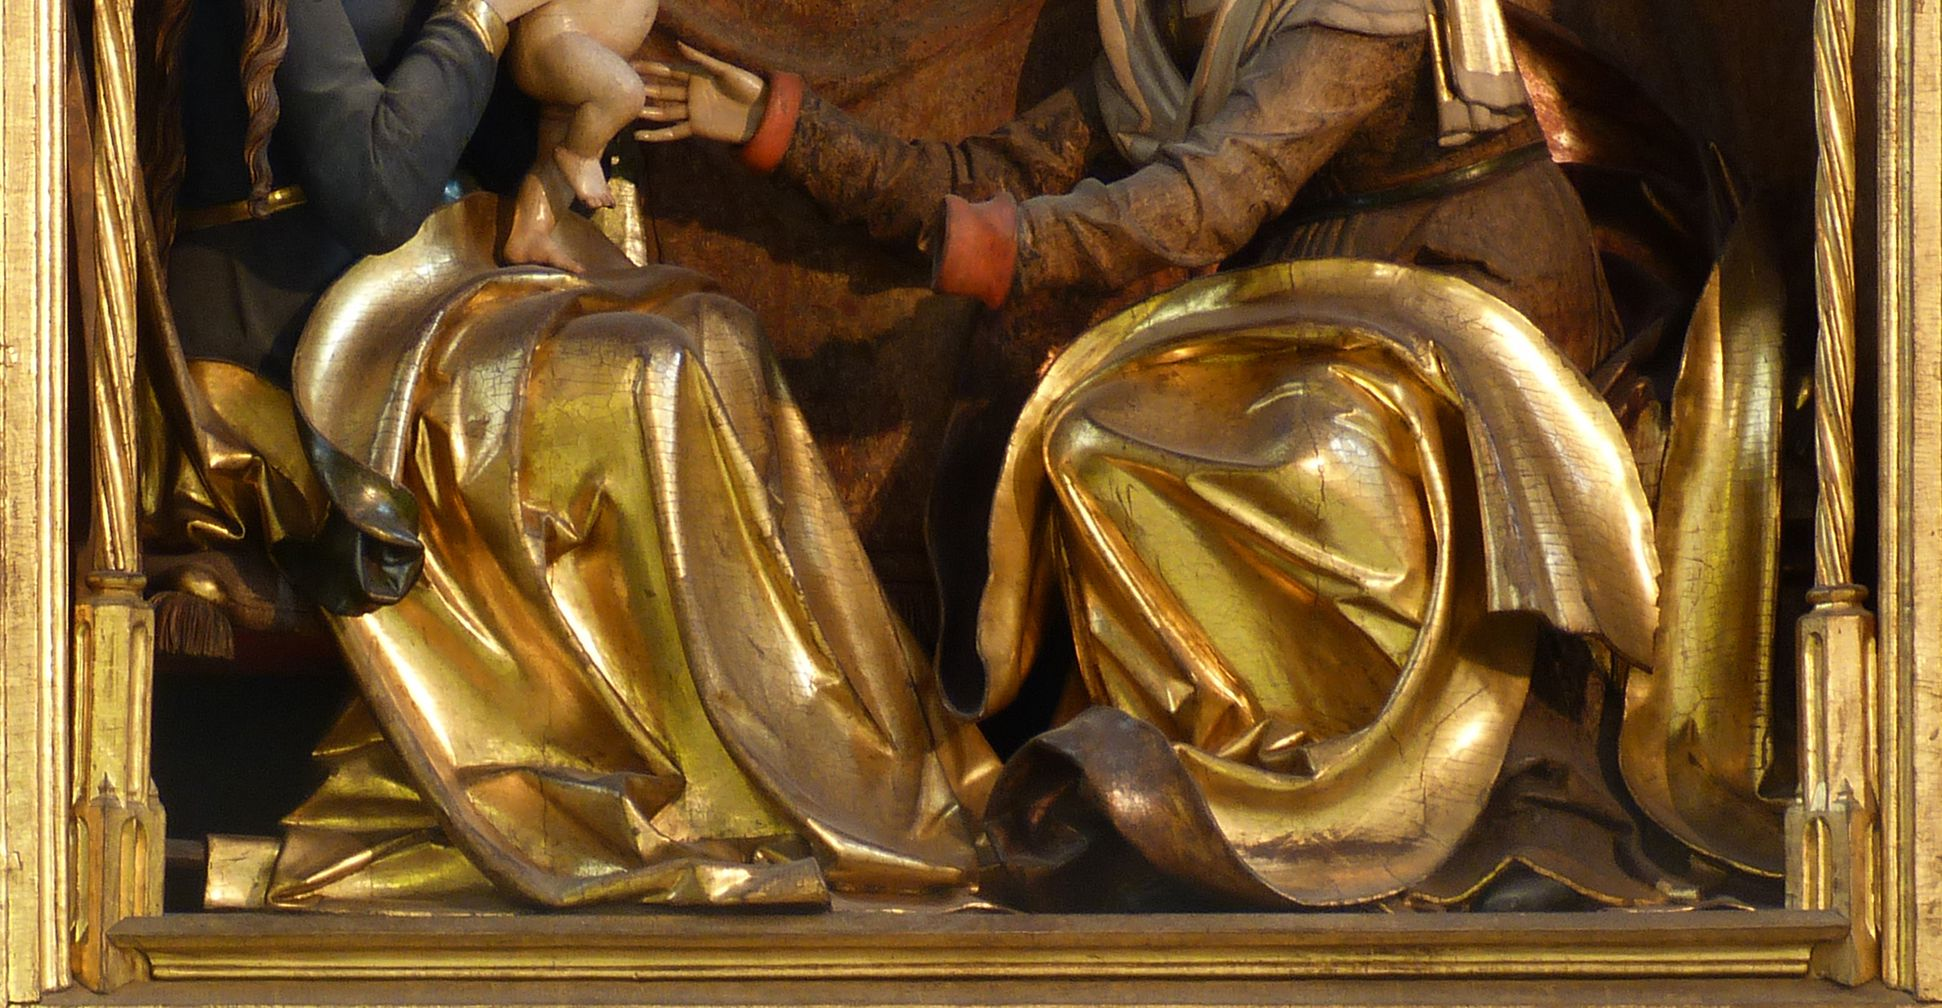 St. Anne´s Altar Central shrine, detail of the gowns of the main figures